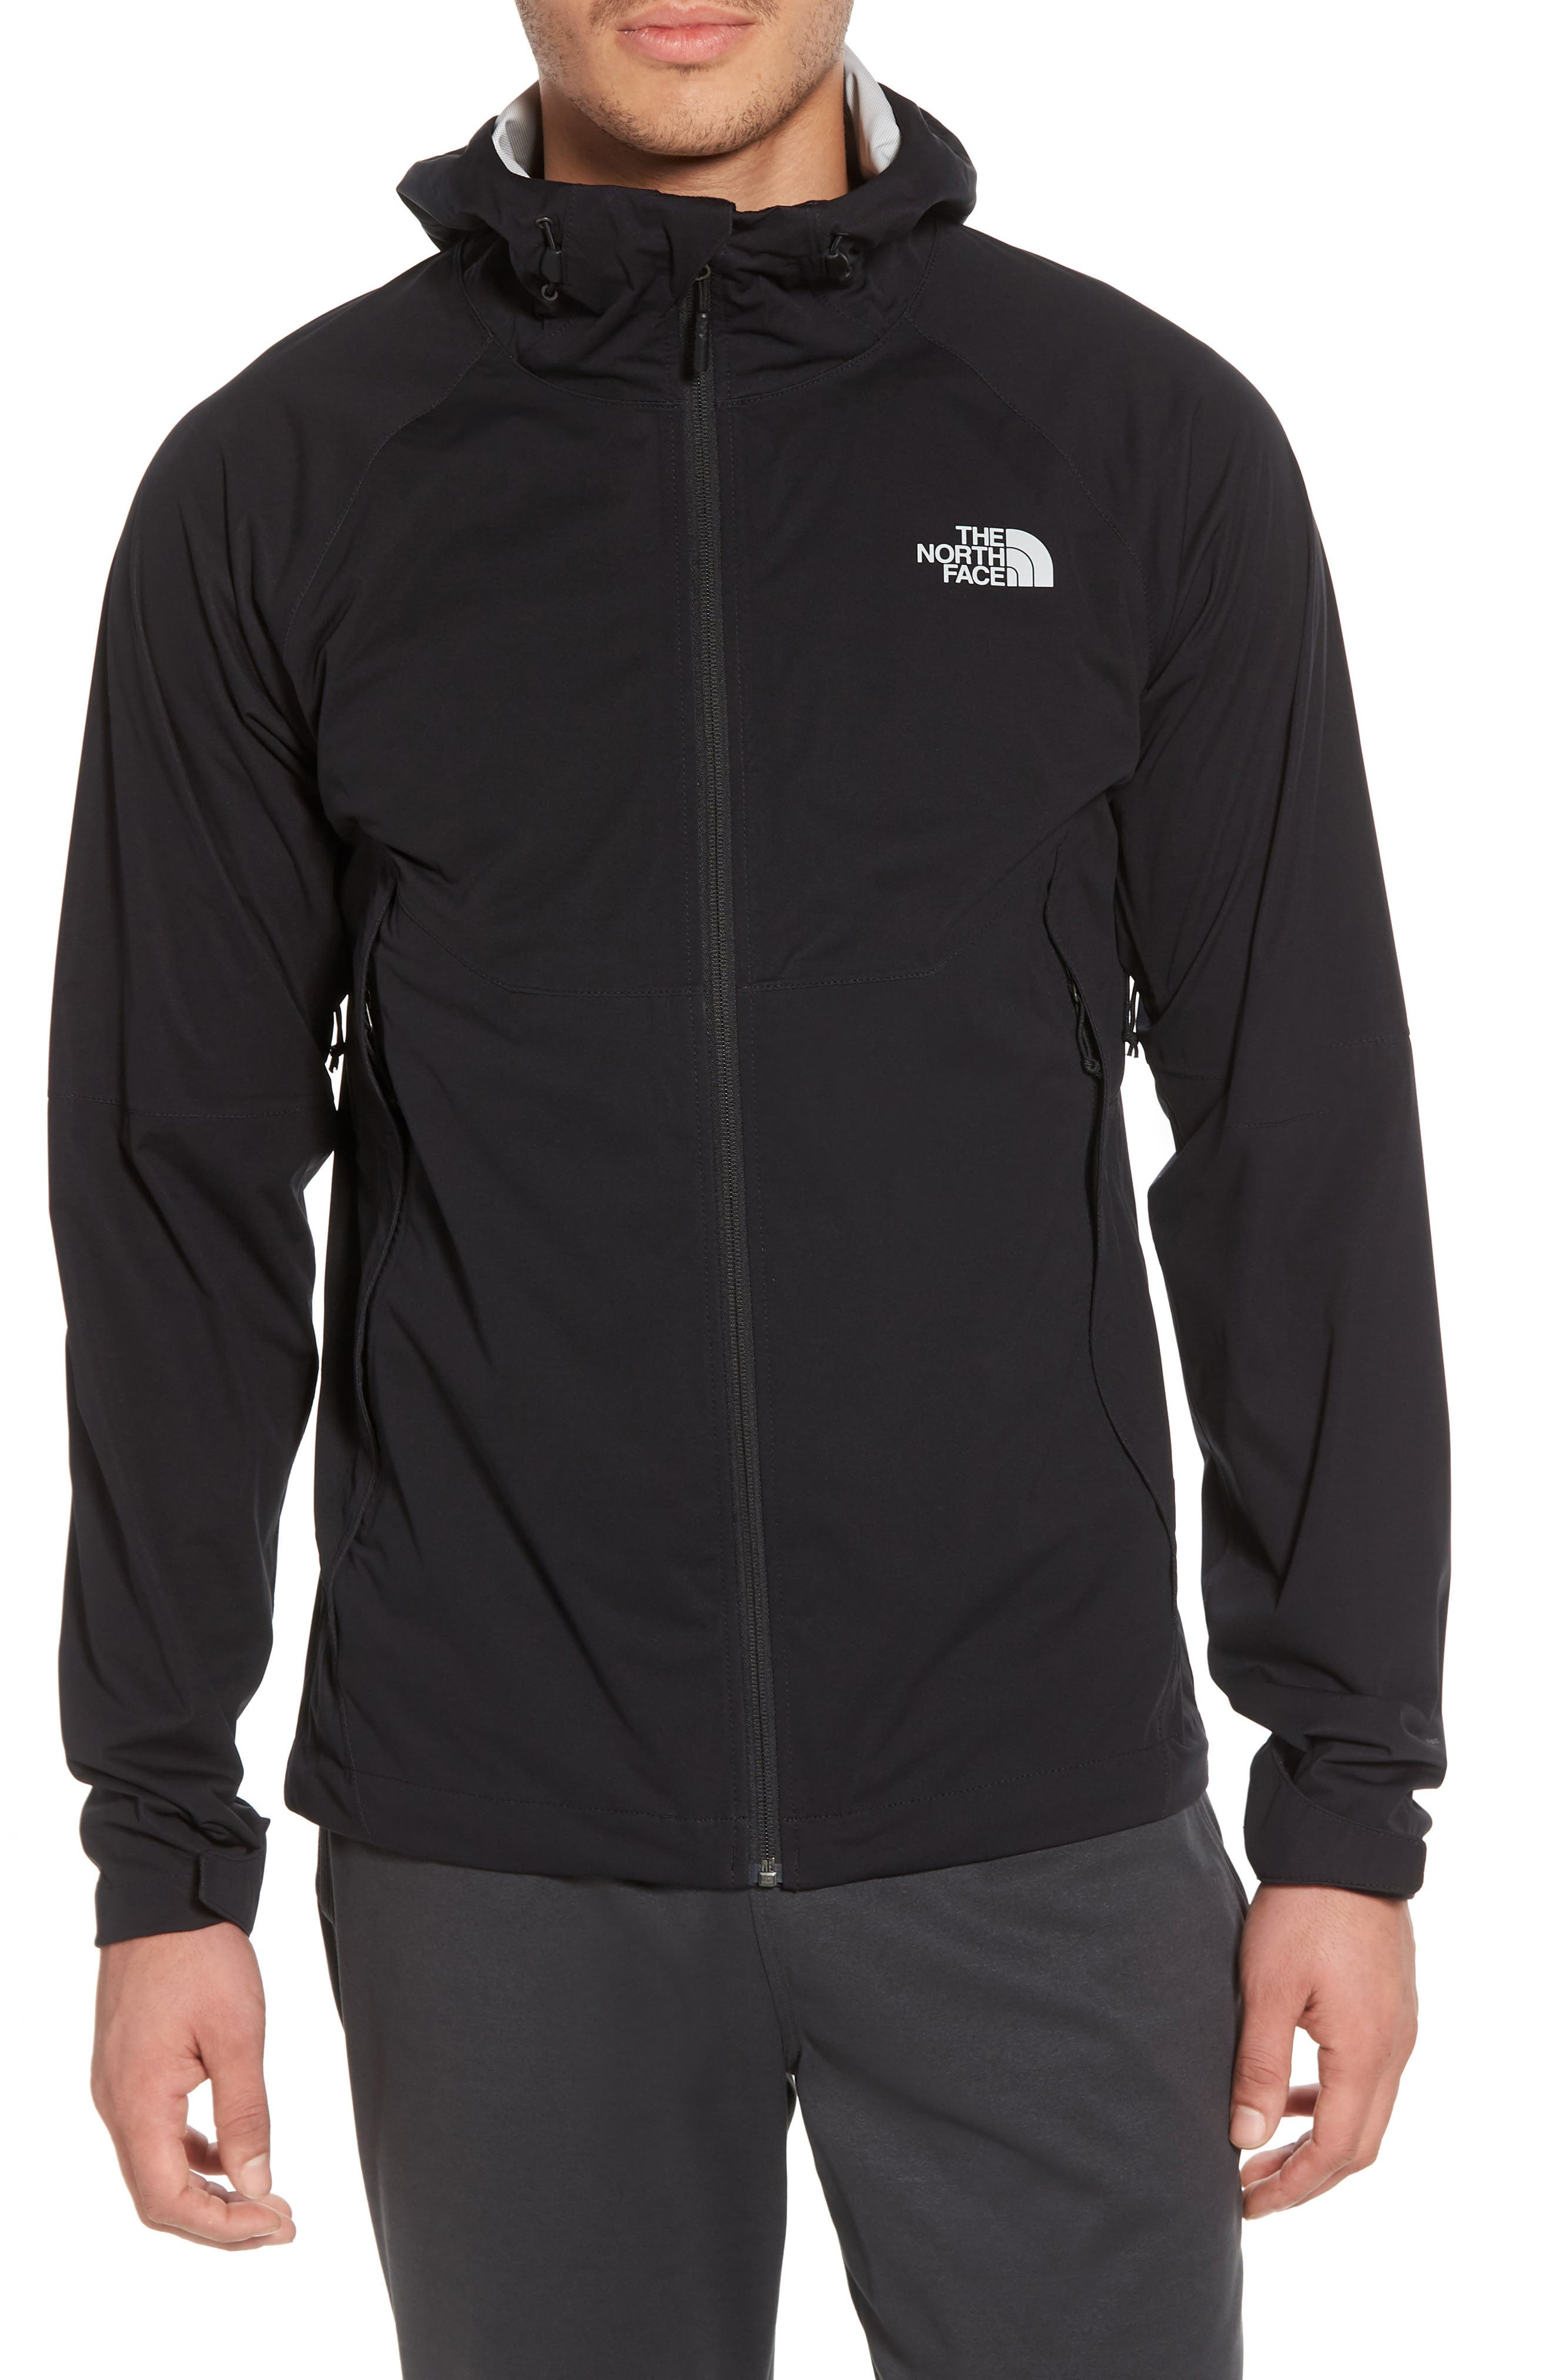 THE NORTH FACE, Allproof Stretch Hooded Rain Jacket, Alternate thumbnail 5, color, 001